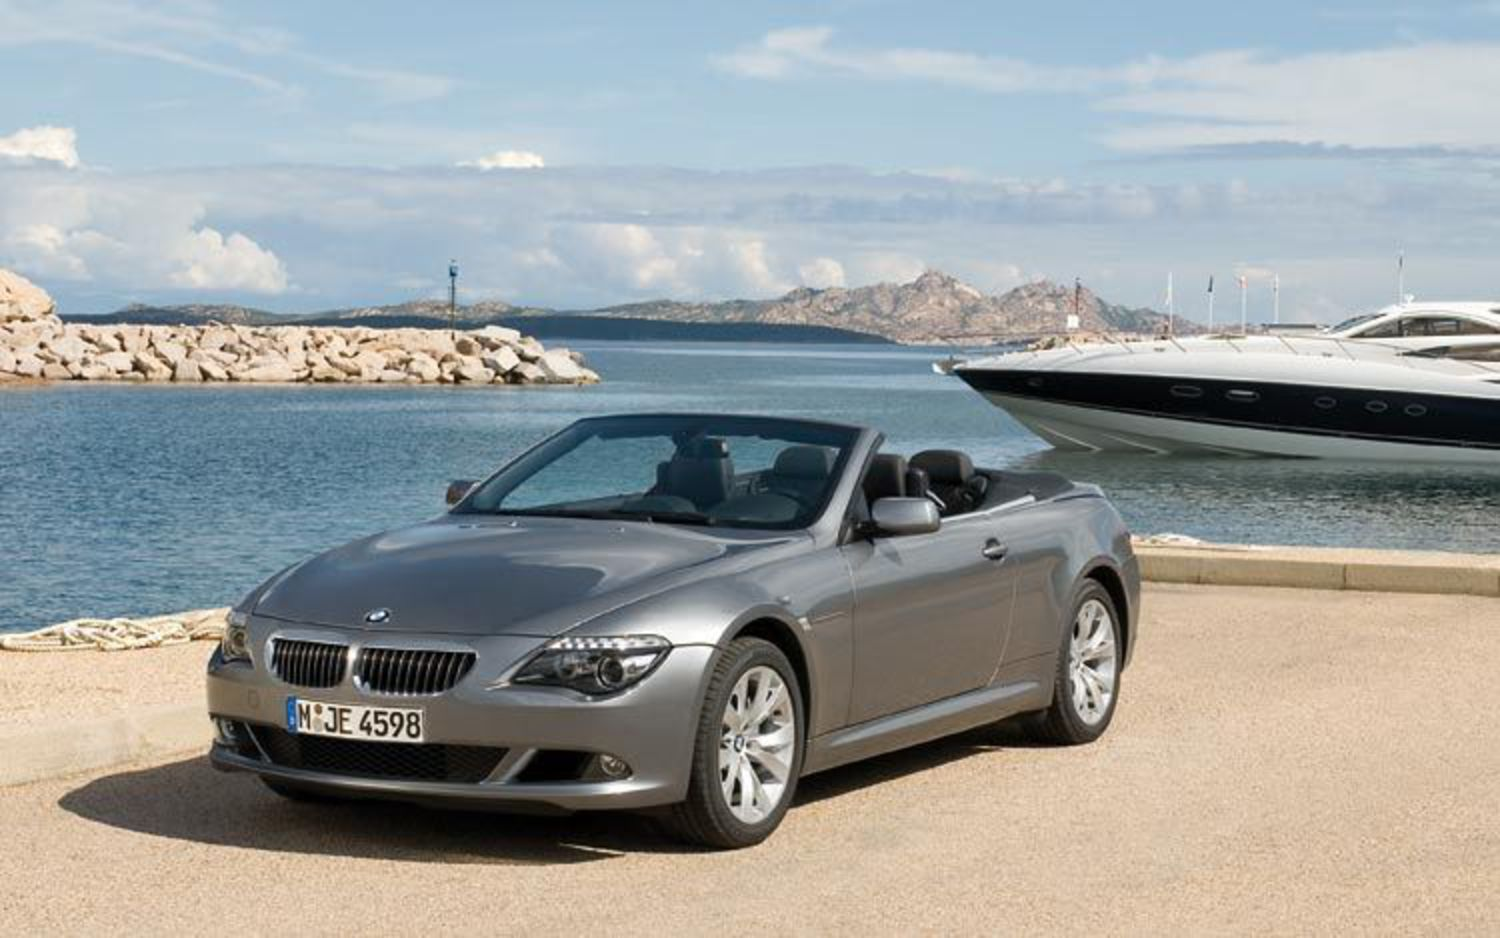 2008 Bmw 645I Convertible